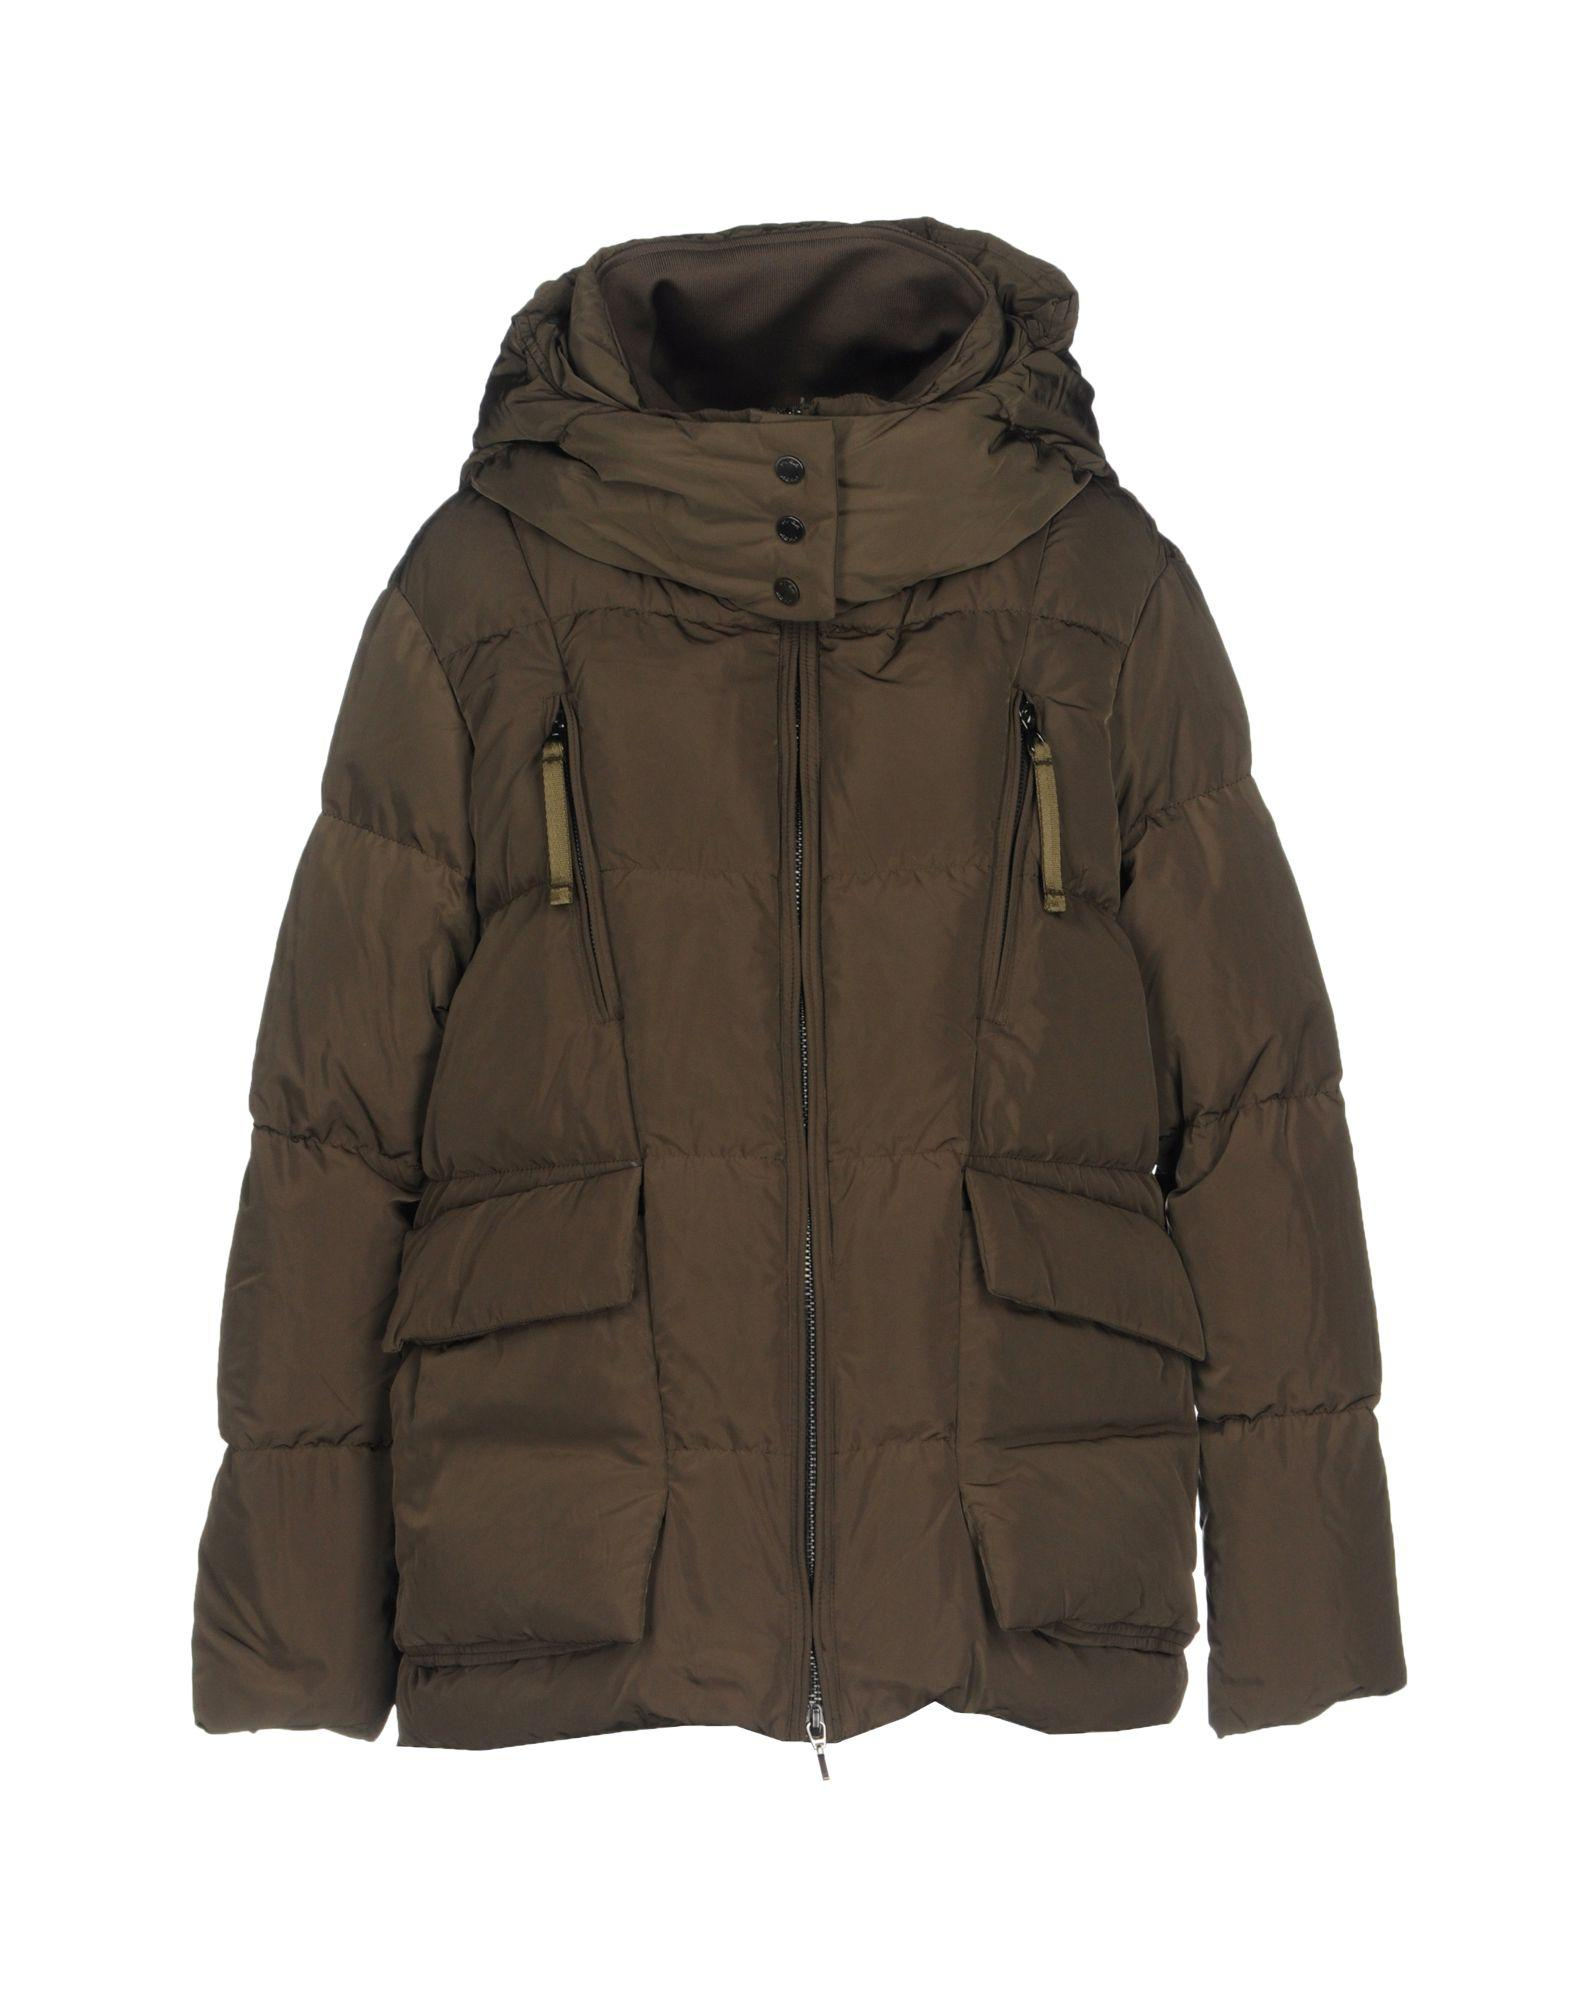 Geox Down Jackets In Military Green